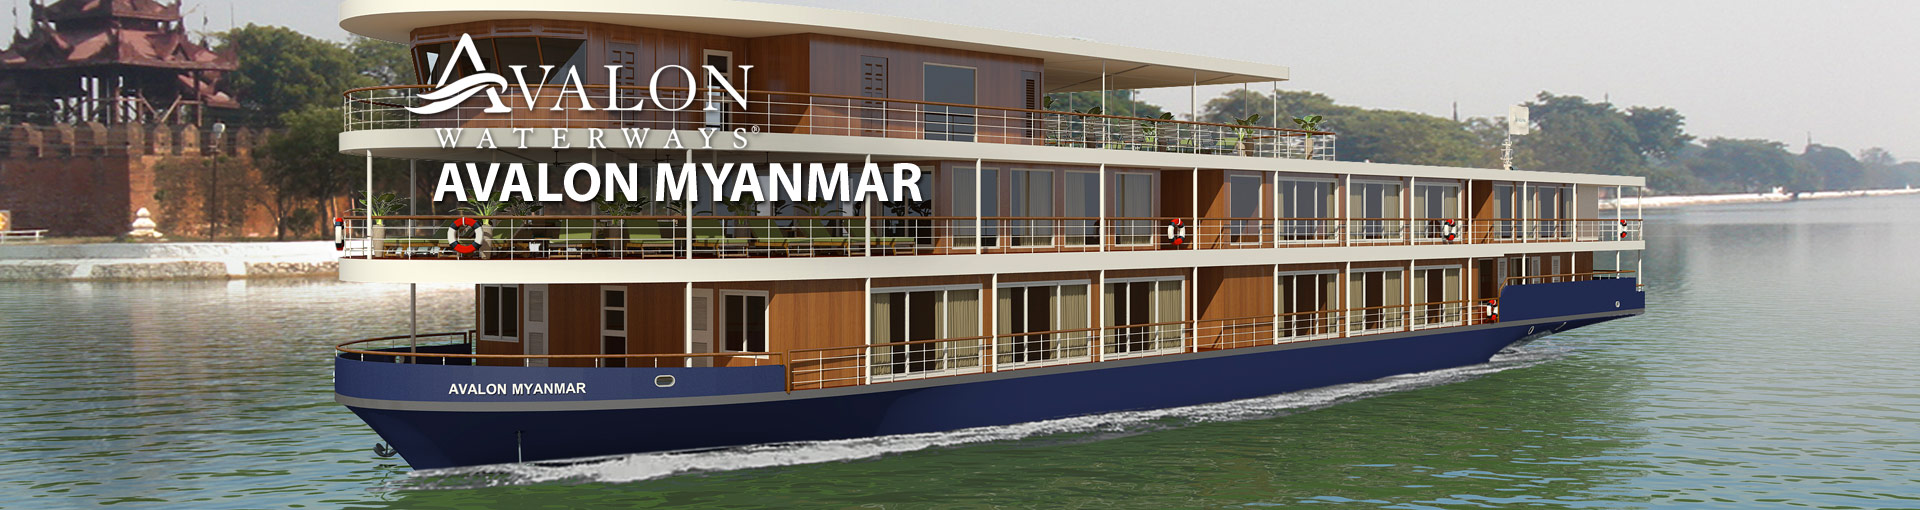 Avalon Myanmar River Cruise Ship